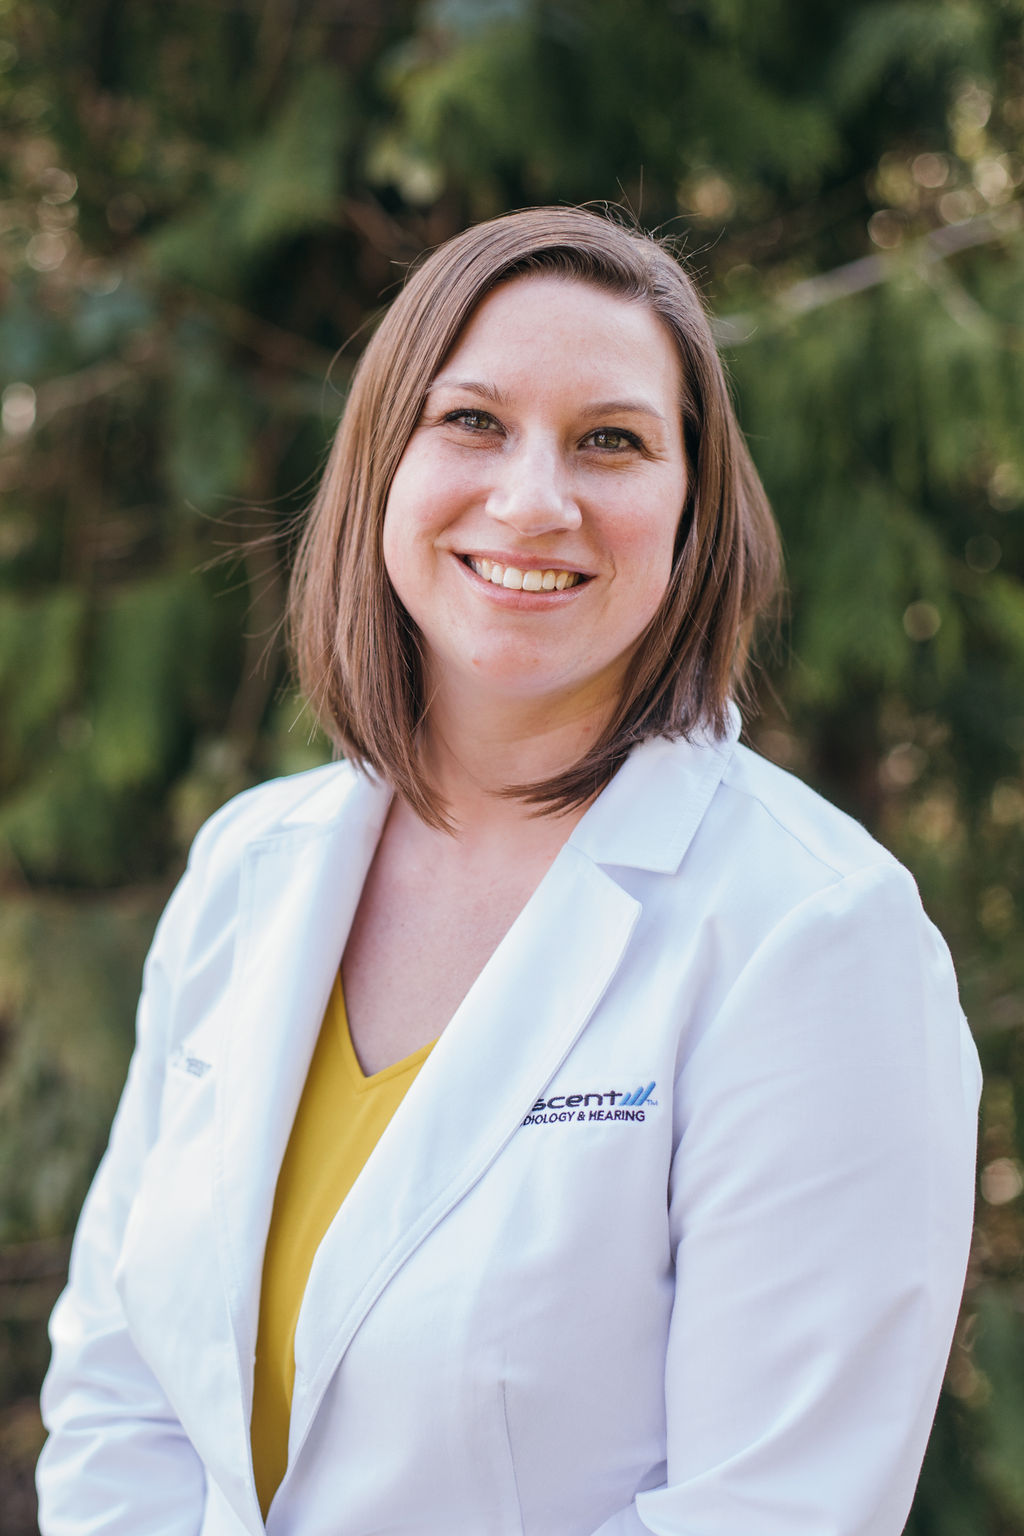 Jessica Hesson, Au.D. : Doctor of Audiology